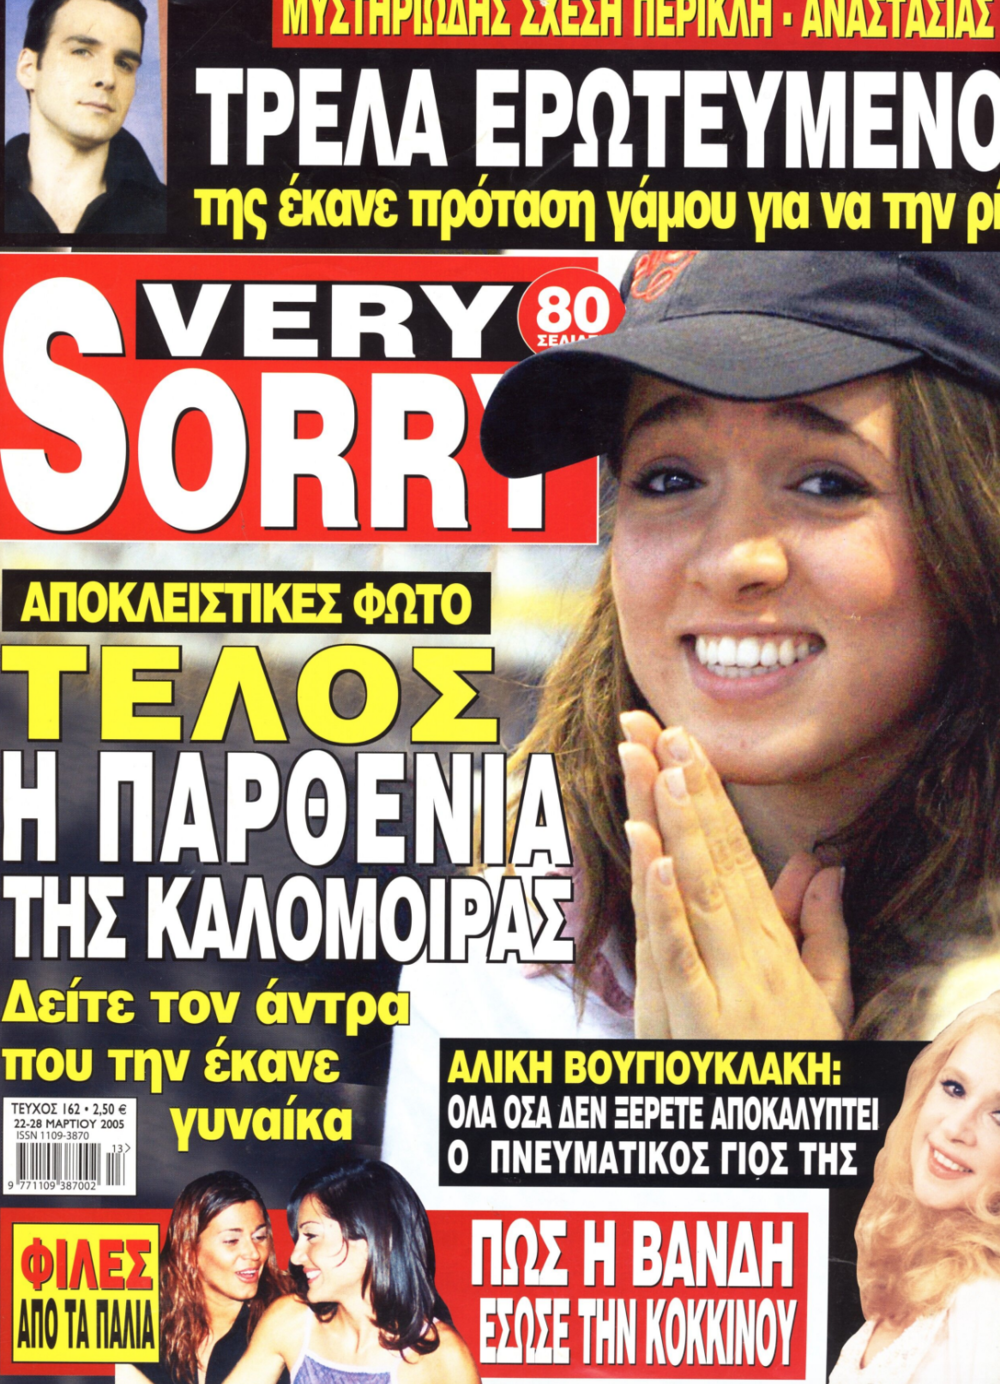 These gossip magazines always make us laugh! #tbt